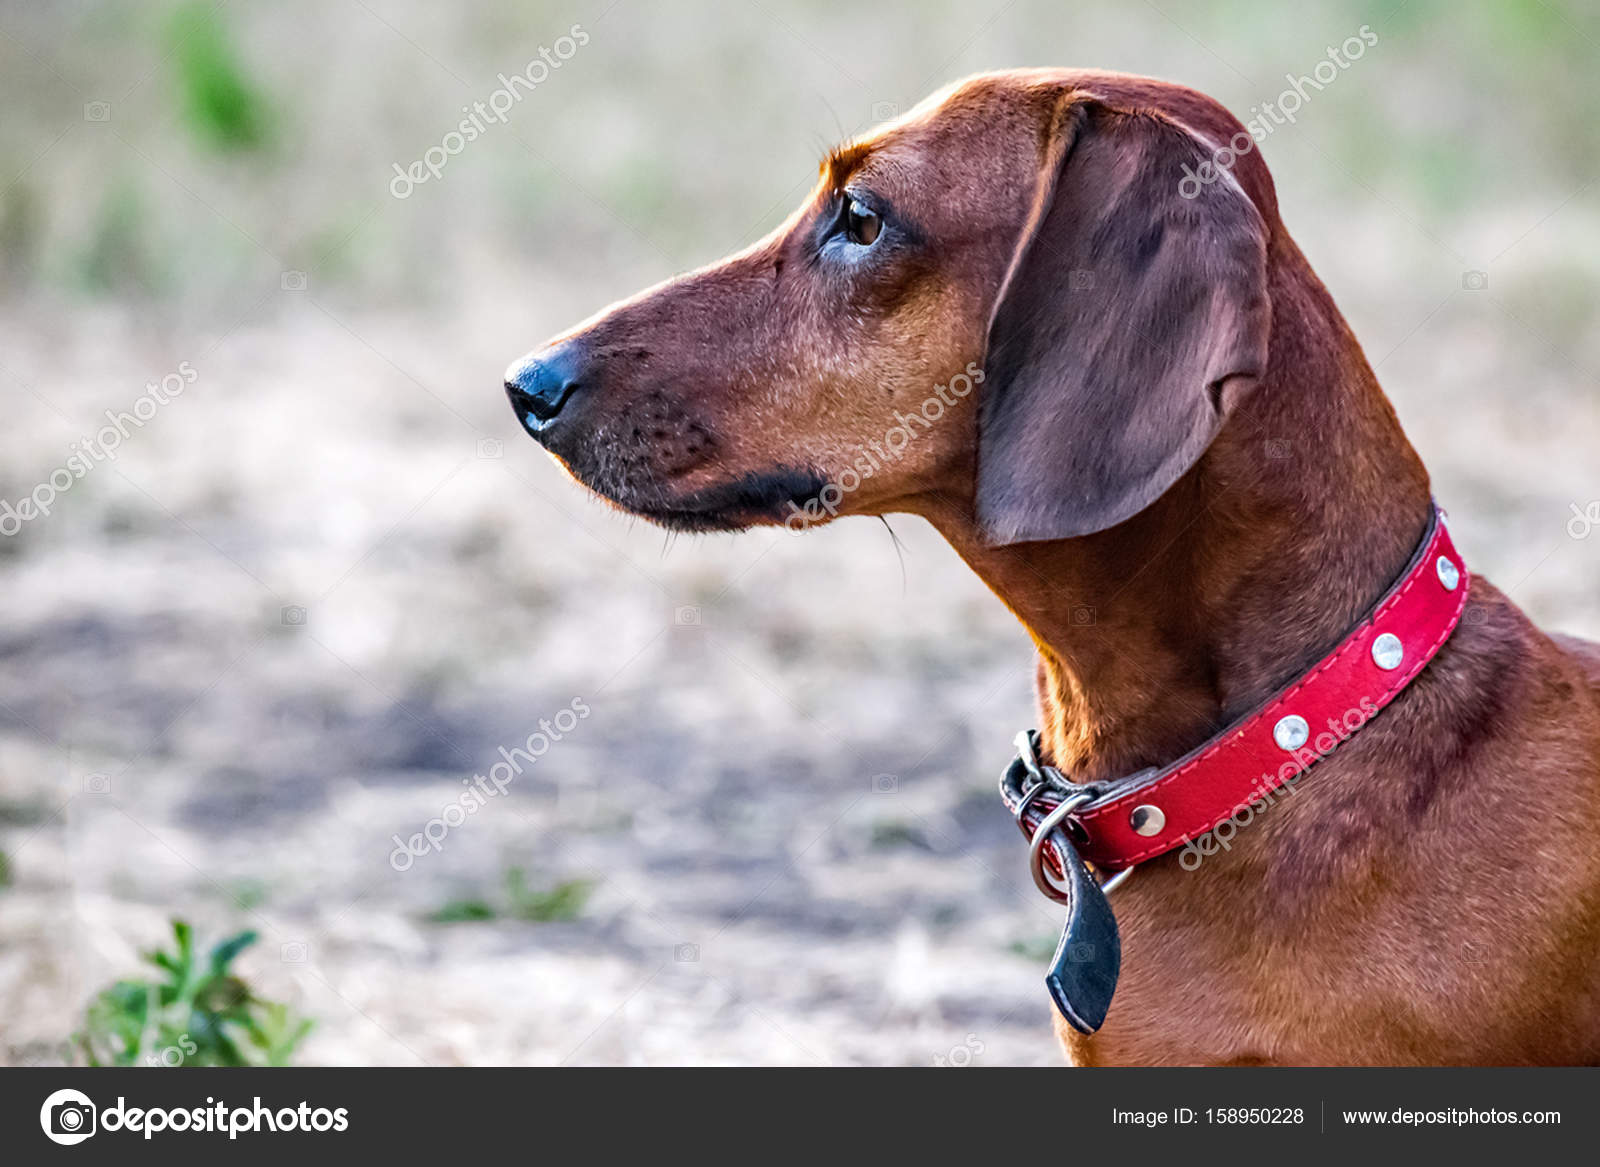 un teckel de chasse chien assis sur une clairi re en t portrait d un chien de profil. Black Bedroom Furniture Sets. Home Design Ideas